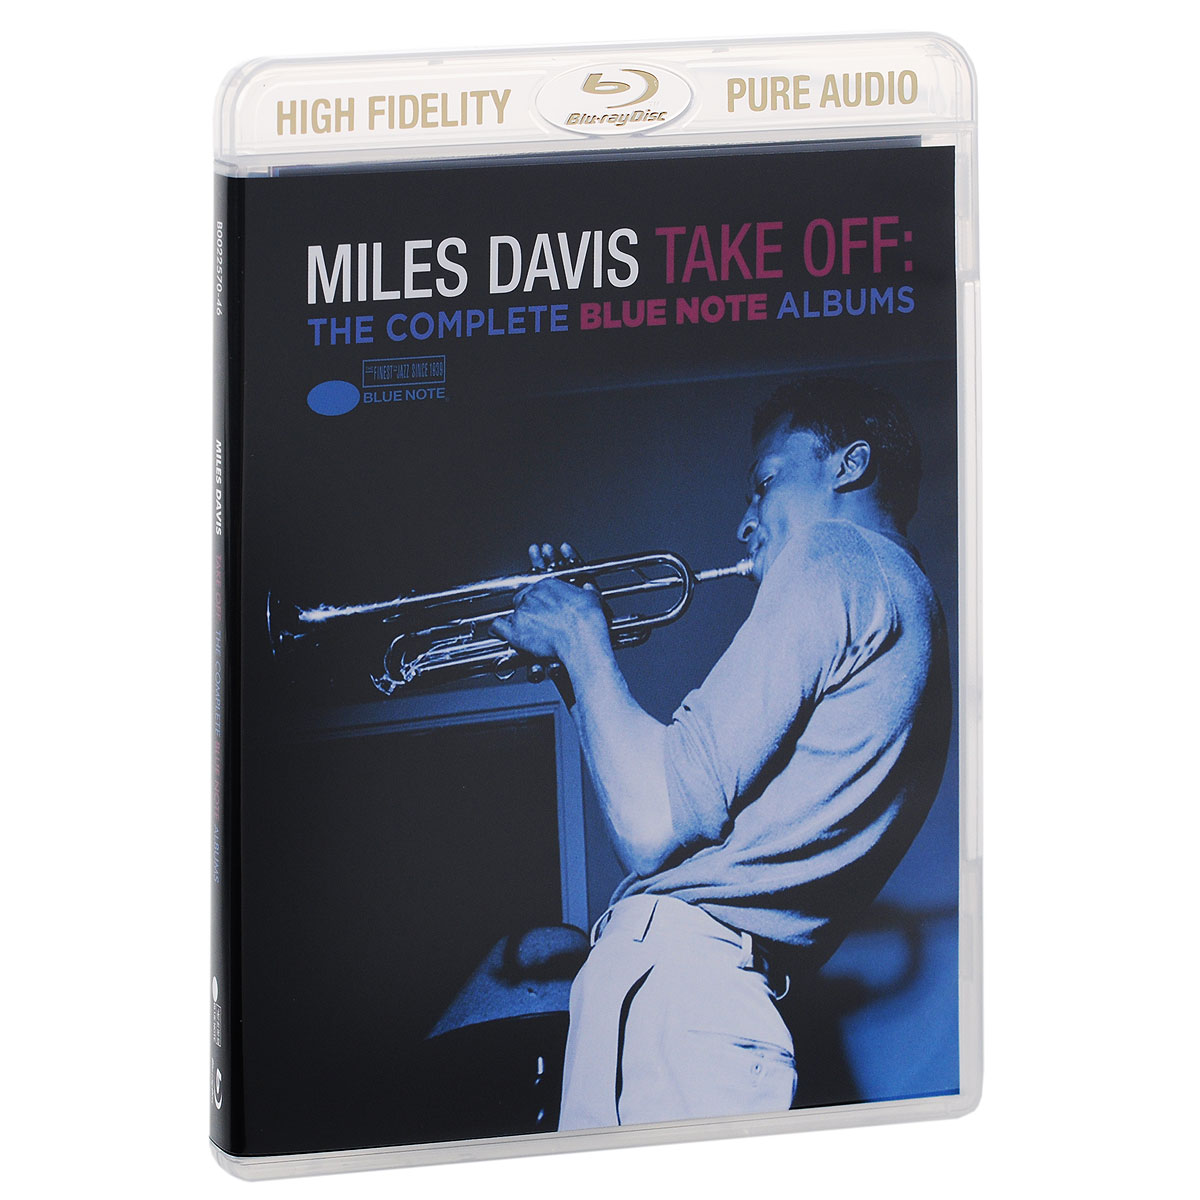 Майлз Дэвис Miles Davis. Take Off. The Complete Blue Note Albums (Blu-ray Audio) a ha ending on a high note the final concert blu ray